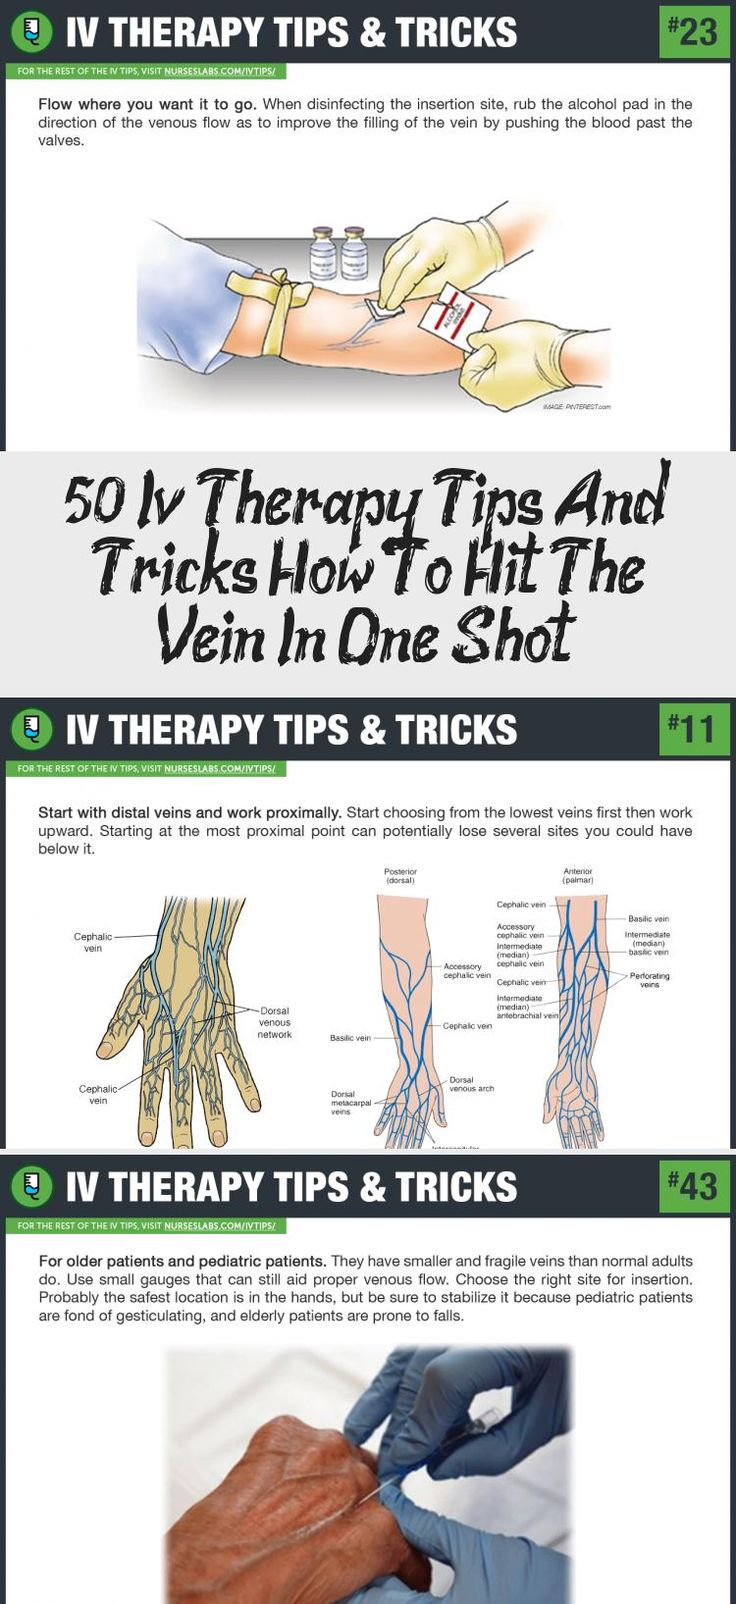 50+ Iv Therapy Tips And Tricks How To Hit The Vein In One